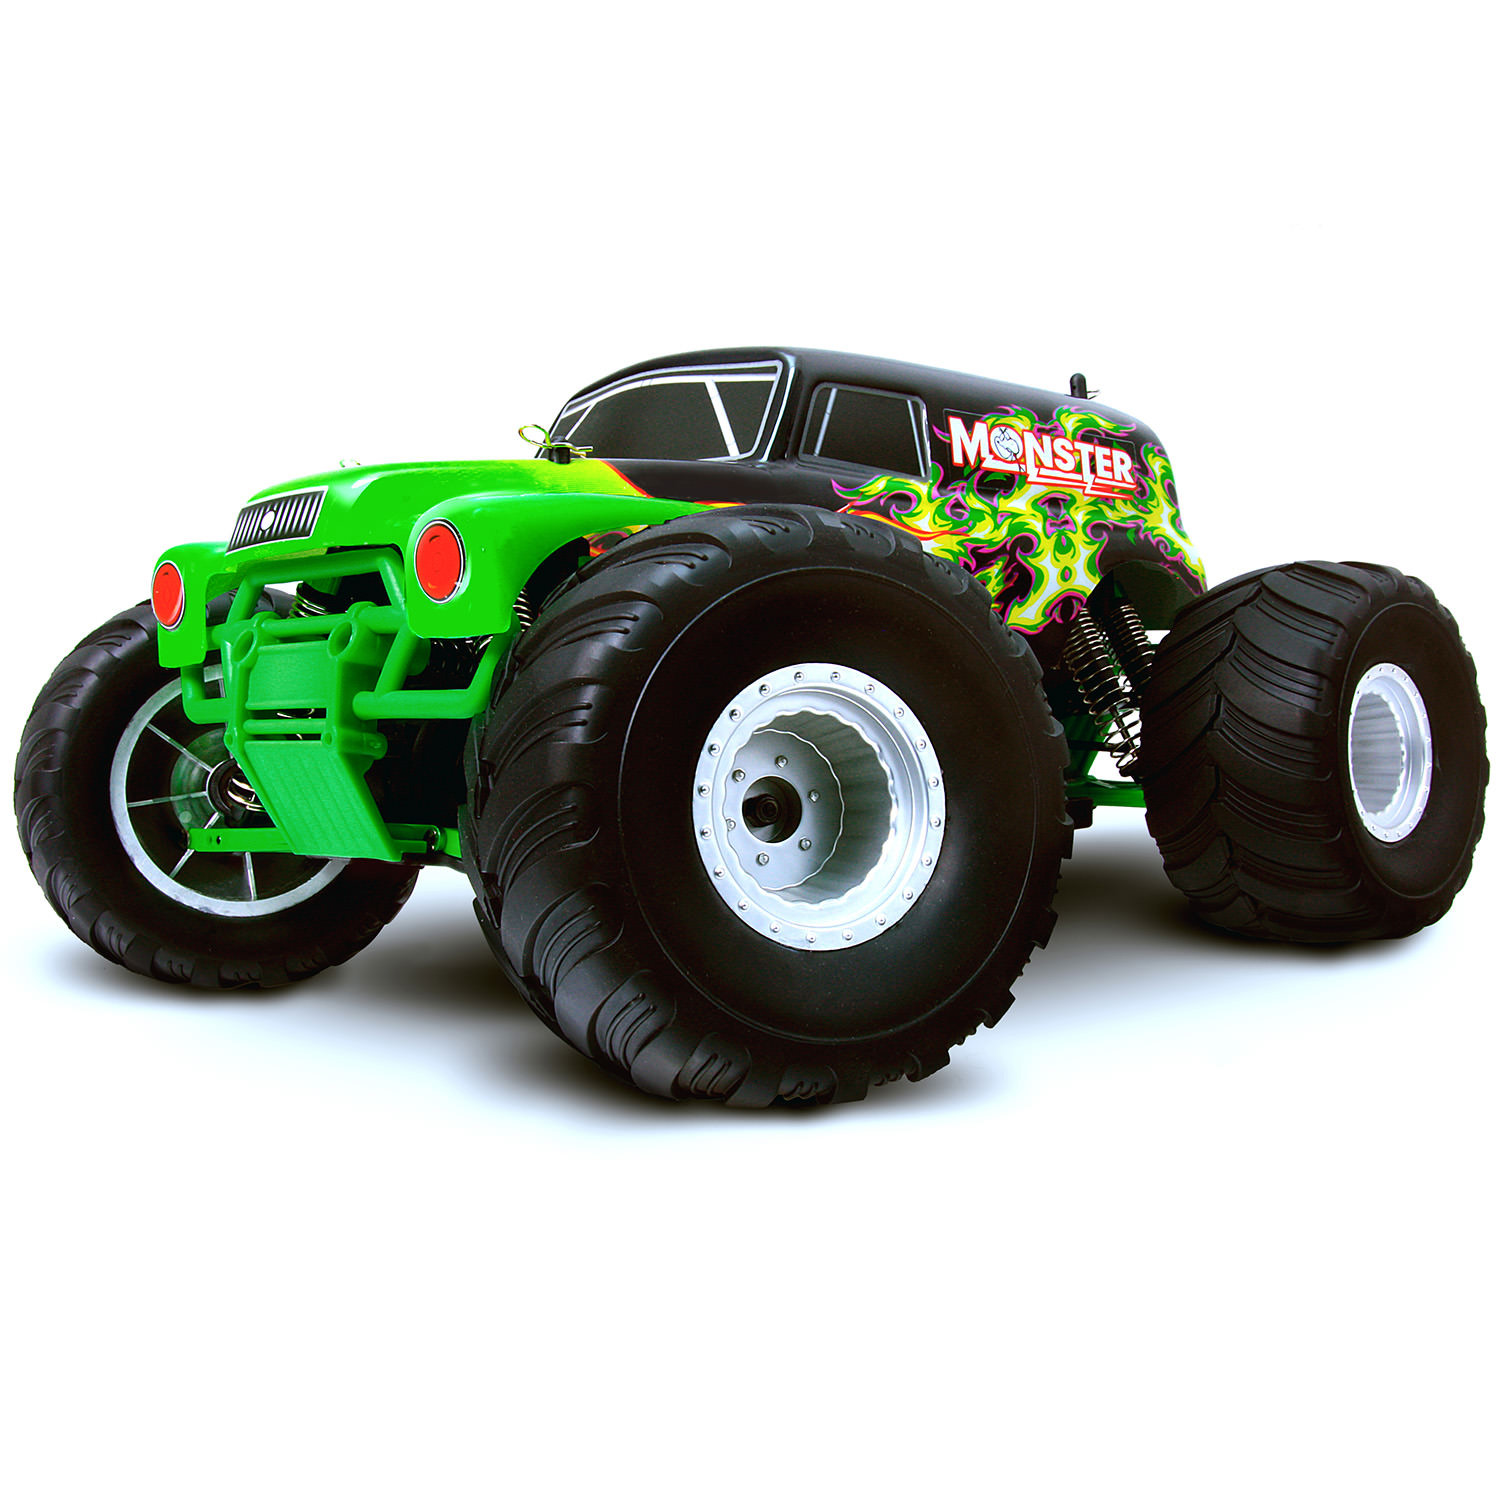 HSP Monster Truck Special Edition Green RC Truck at Hobby Warehouse